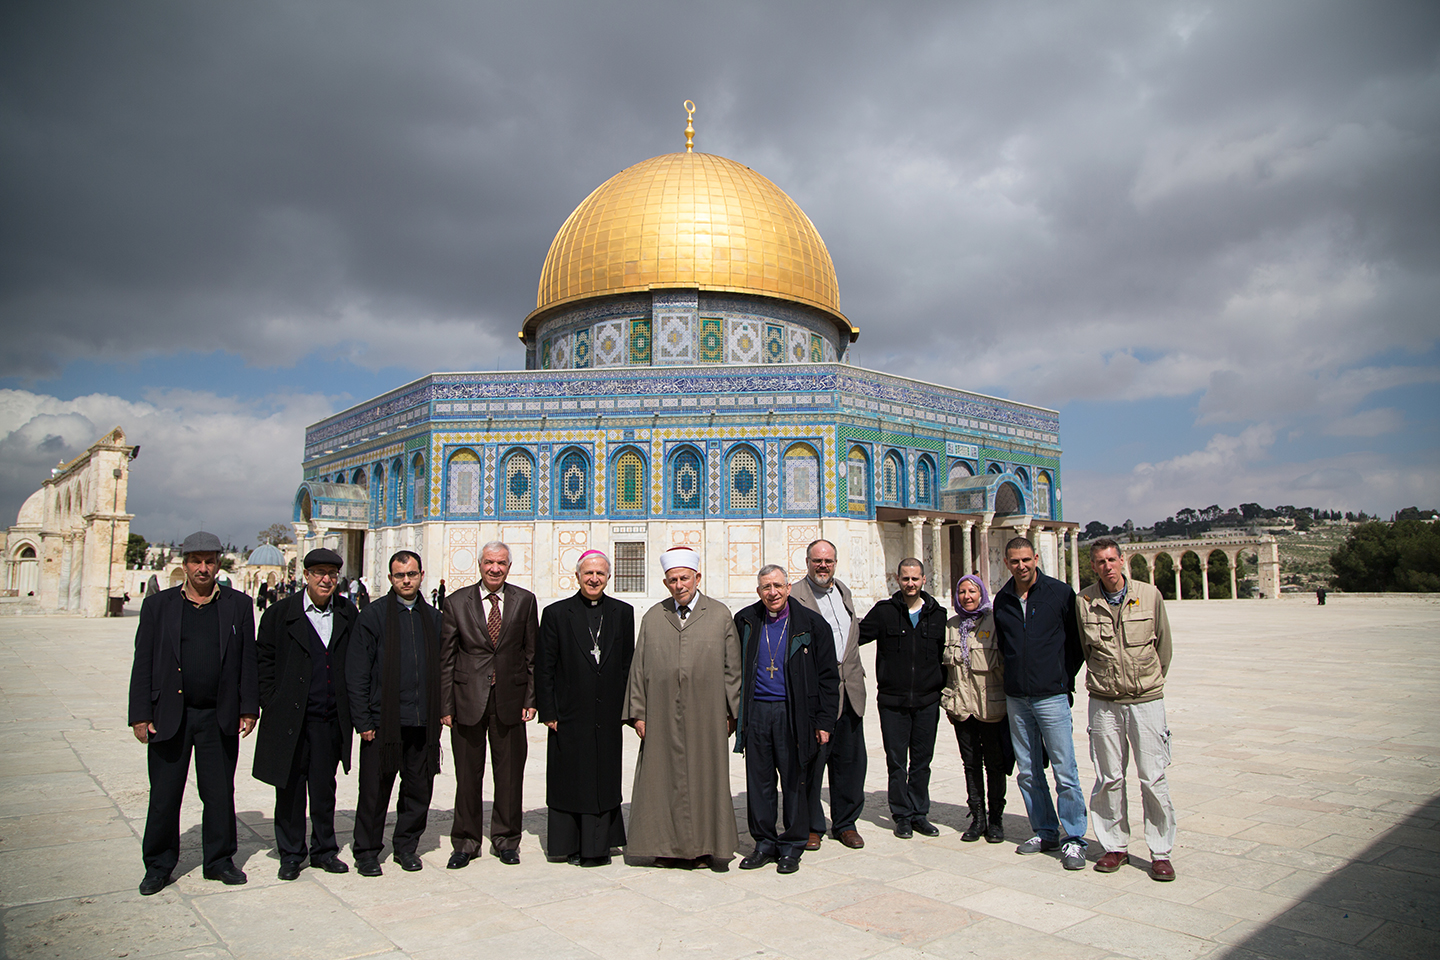 A group of Christians visited Sheikh Abed Atheem, Imam of Al-Aqsa Mosque and M. Azam Abed Alkhatib Altamimi, Head of the Islamic Waqf of Jerusalem to discuss the Israeli Knesset's debate about the sovereignty of Al-Aqsa Mosque. (© Danae Hudson/ELCJHL)